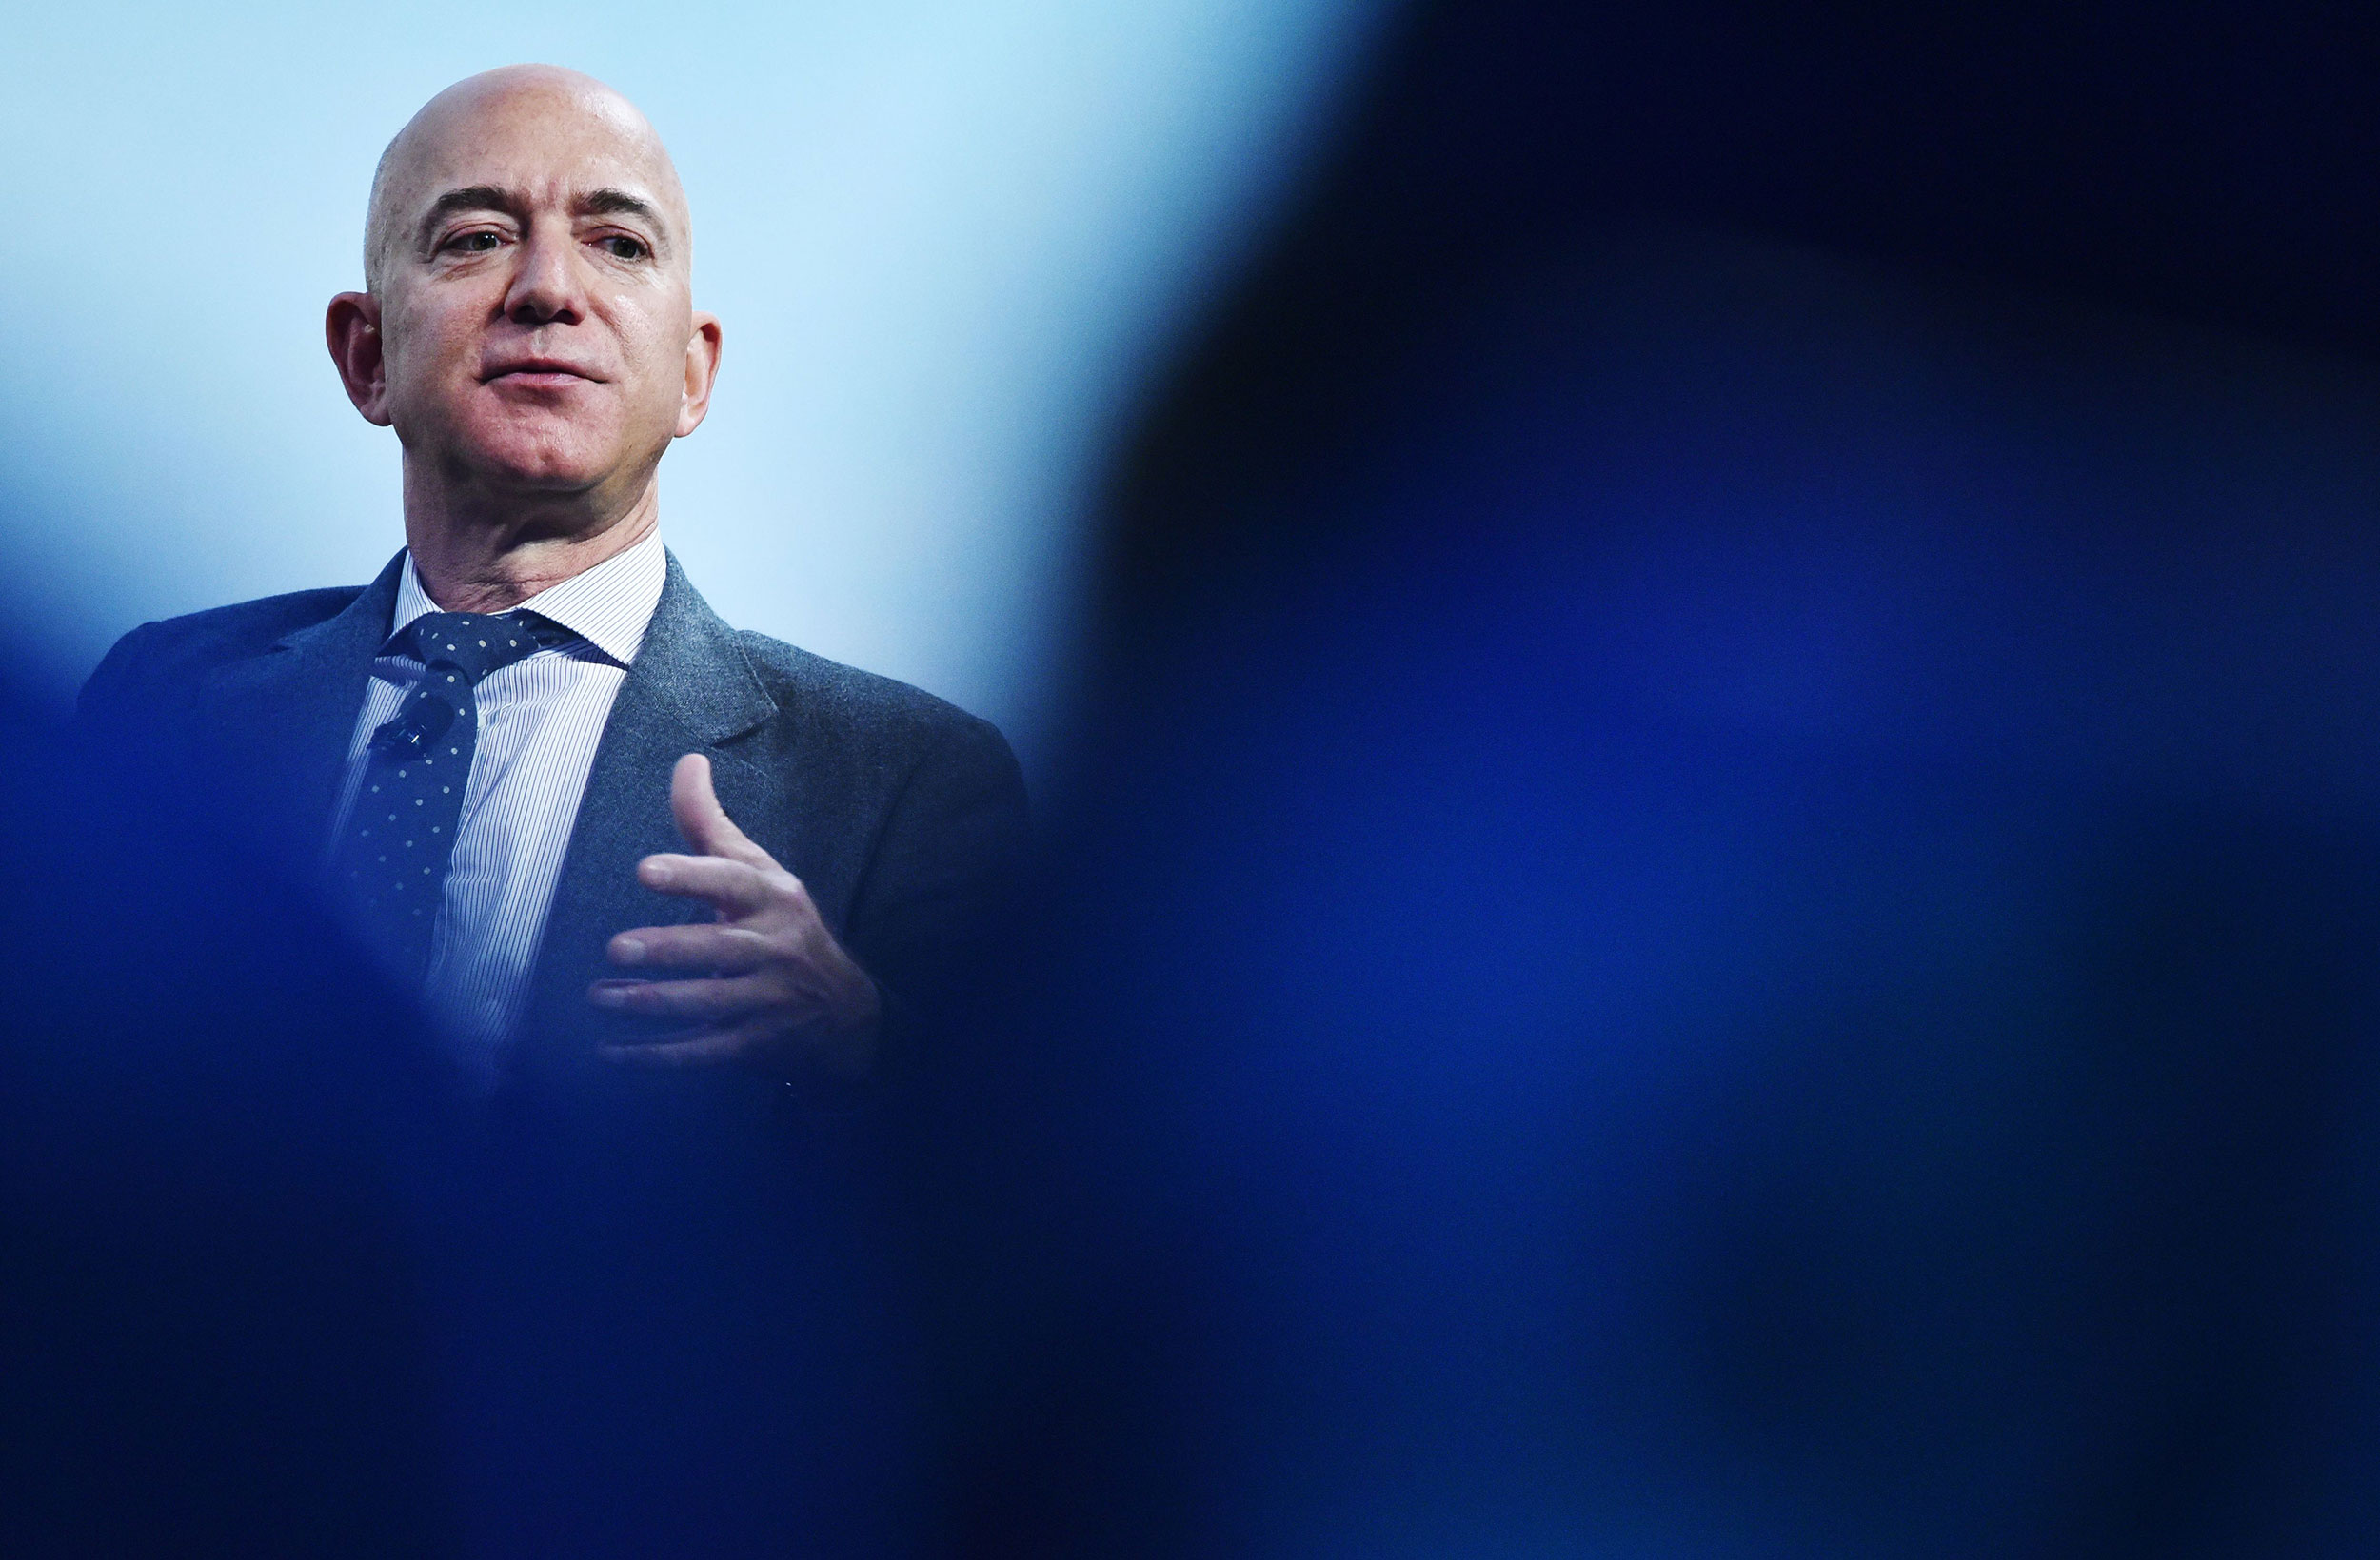 CEOs like Jeff Bezos are grappling with new political realities